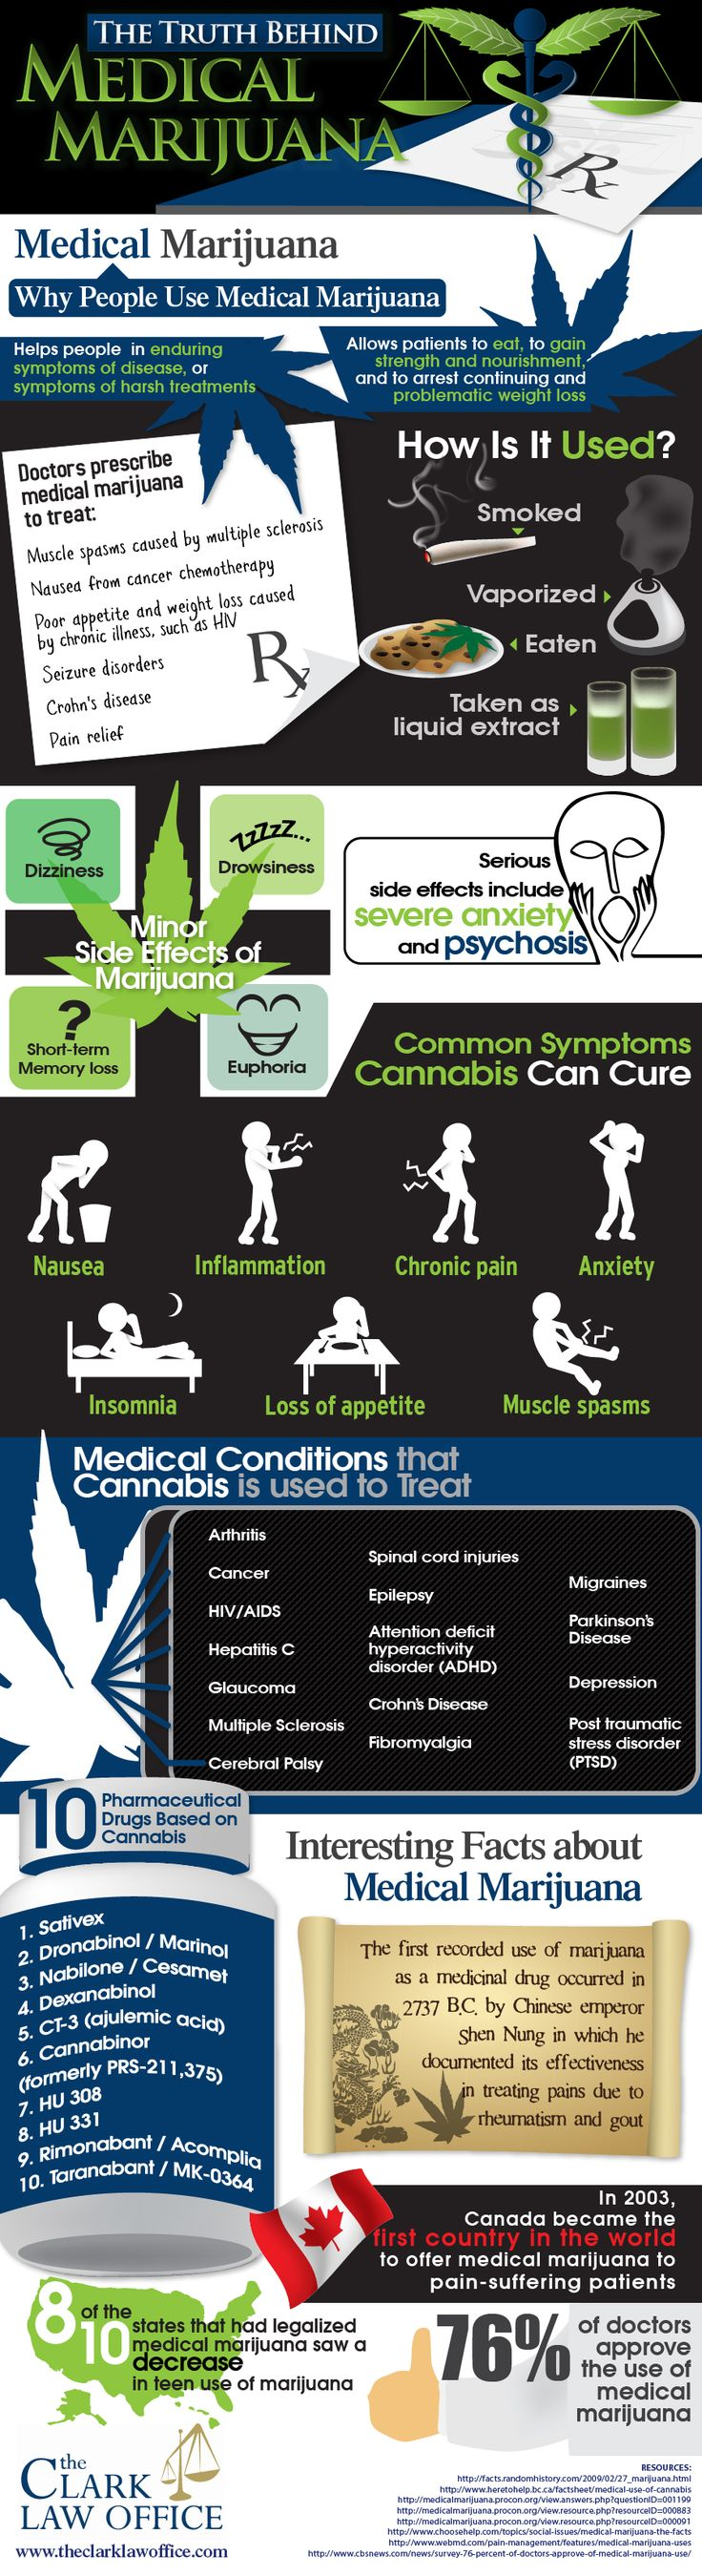 Many people are still misinformed about medical  marijuana simply because there is so much false  information out there. While it's impossible to cover  all of the facts, this infographic intends to provide  some general information along about medical usage  along with medical marijuana related statistics.